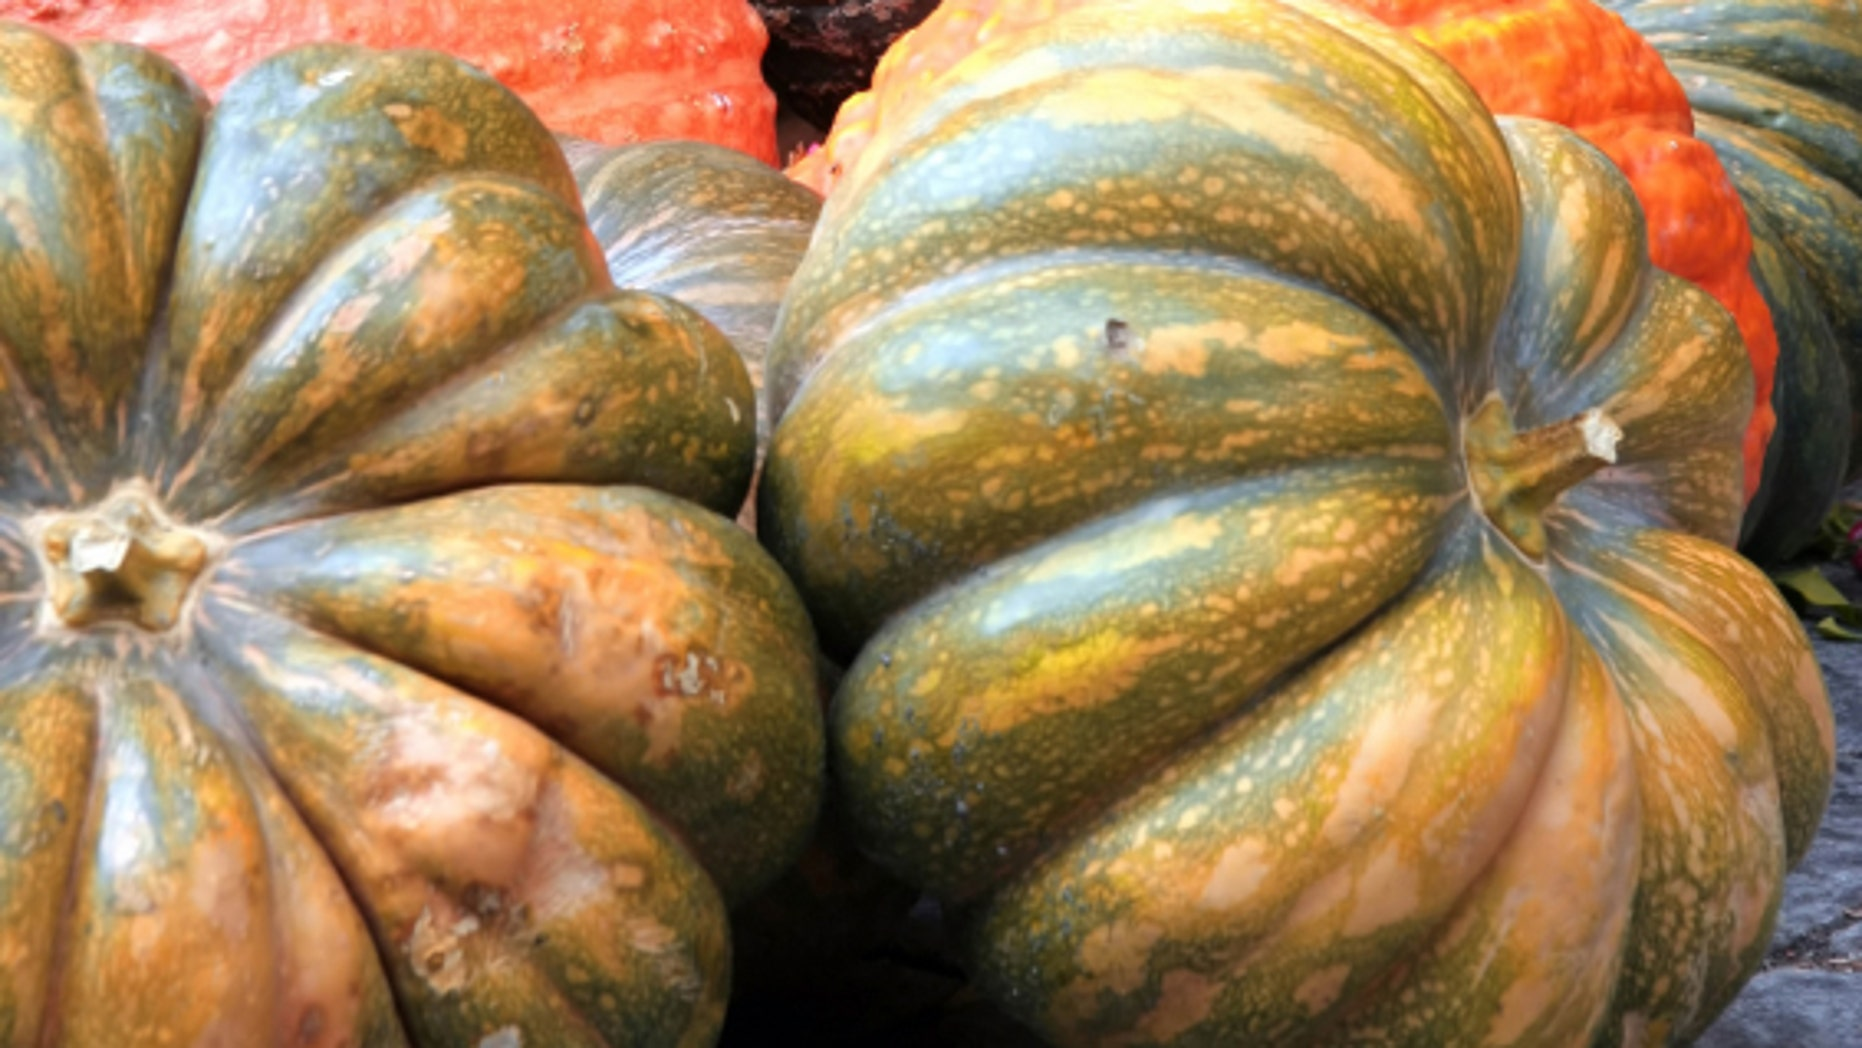 Pumpkins and squash as we know them only exist today because of early farming techniques.